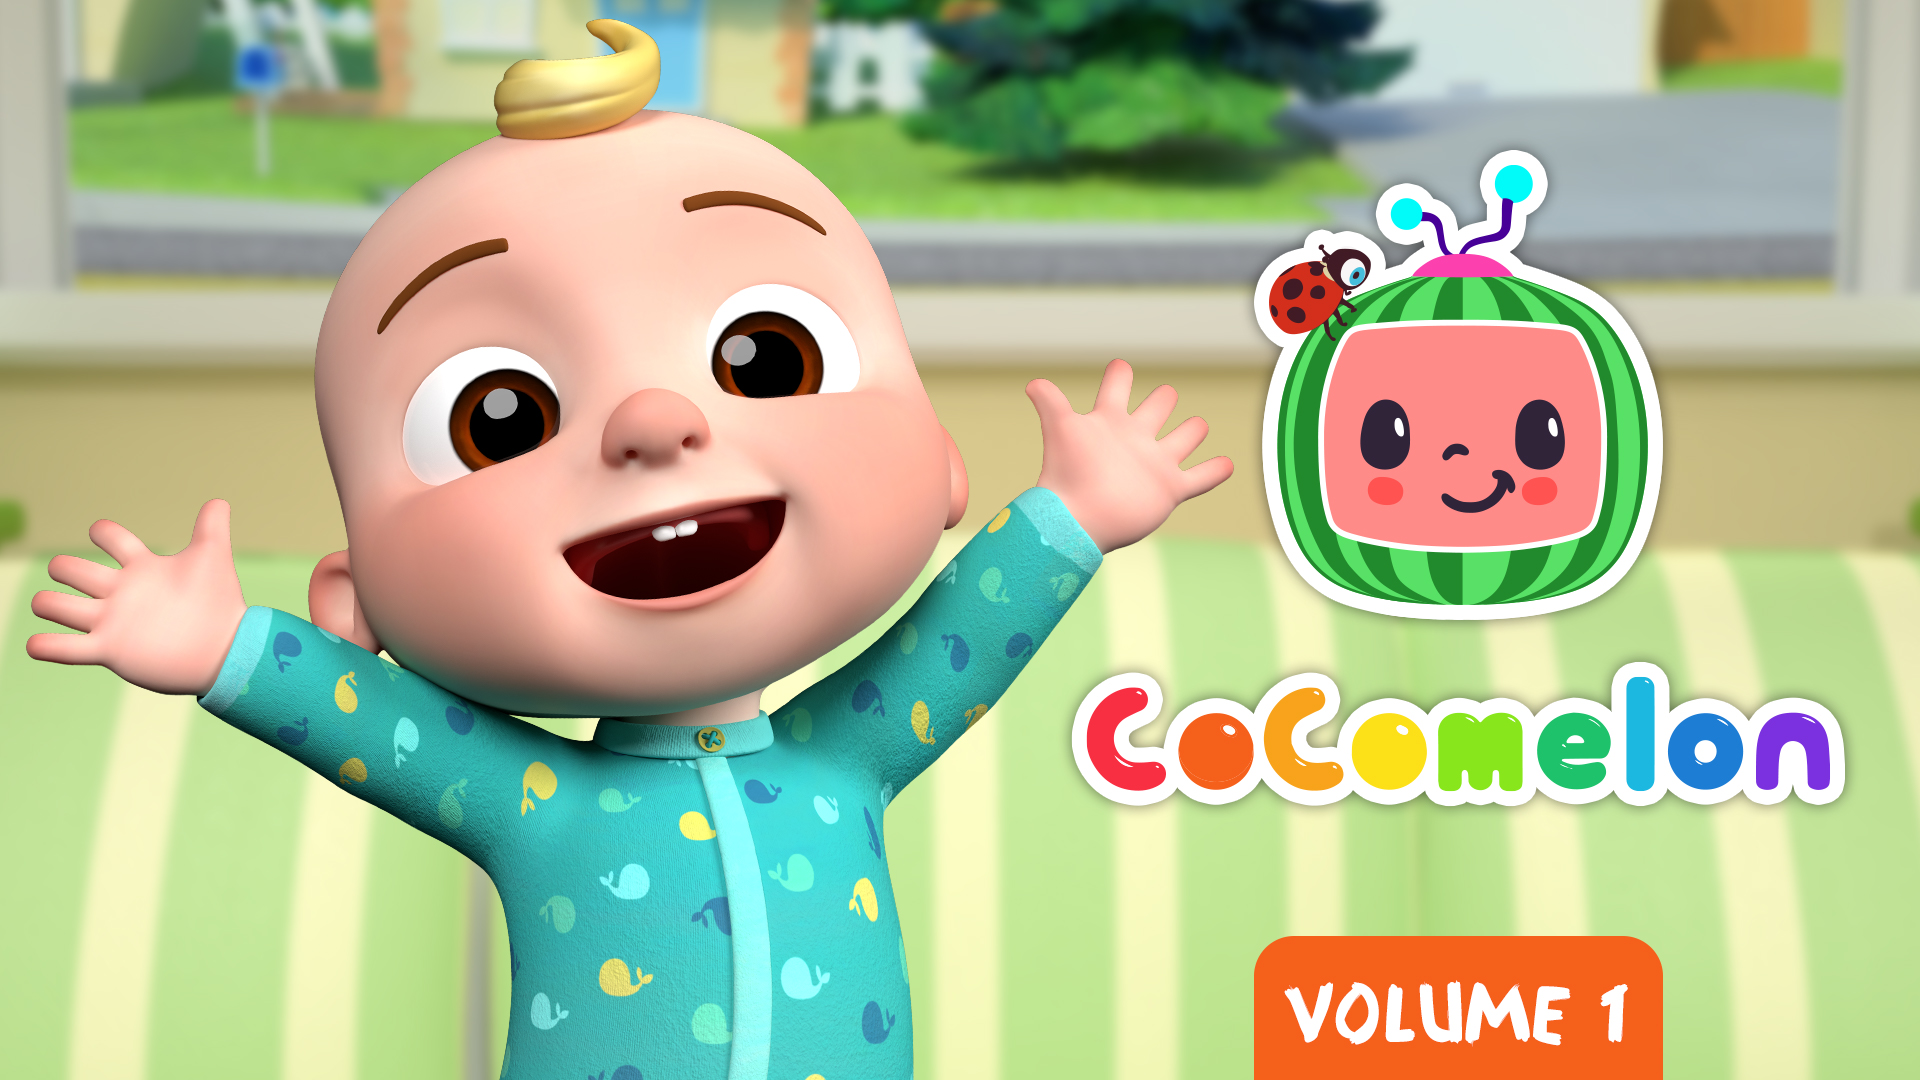 Watch Loco Nuts Nursery Rhymes Kids Songs Non Stop Prime Video Download 133 coco melon free vectors. amazon co uk